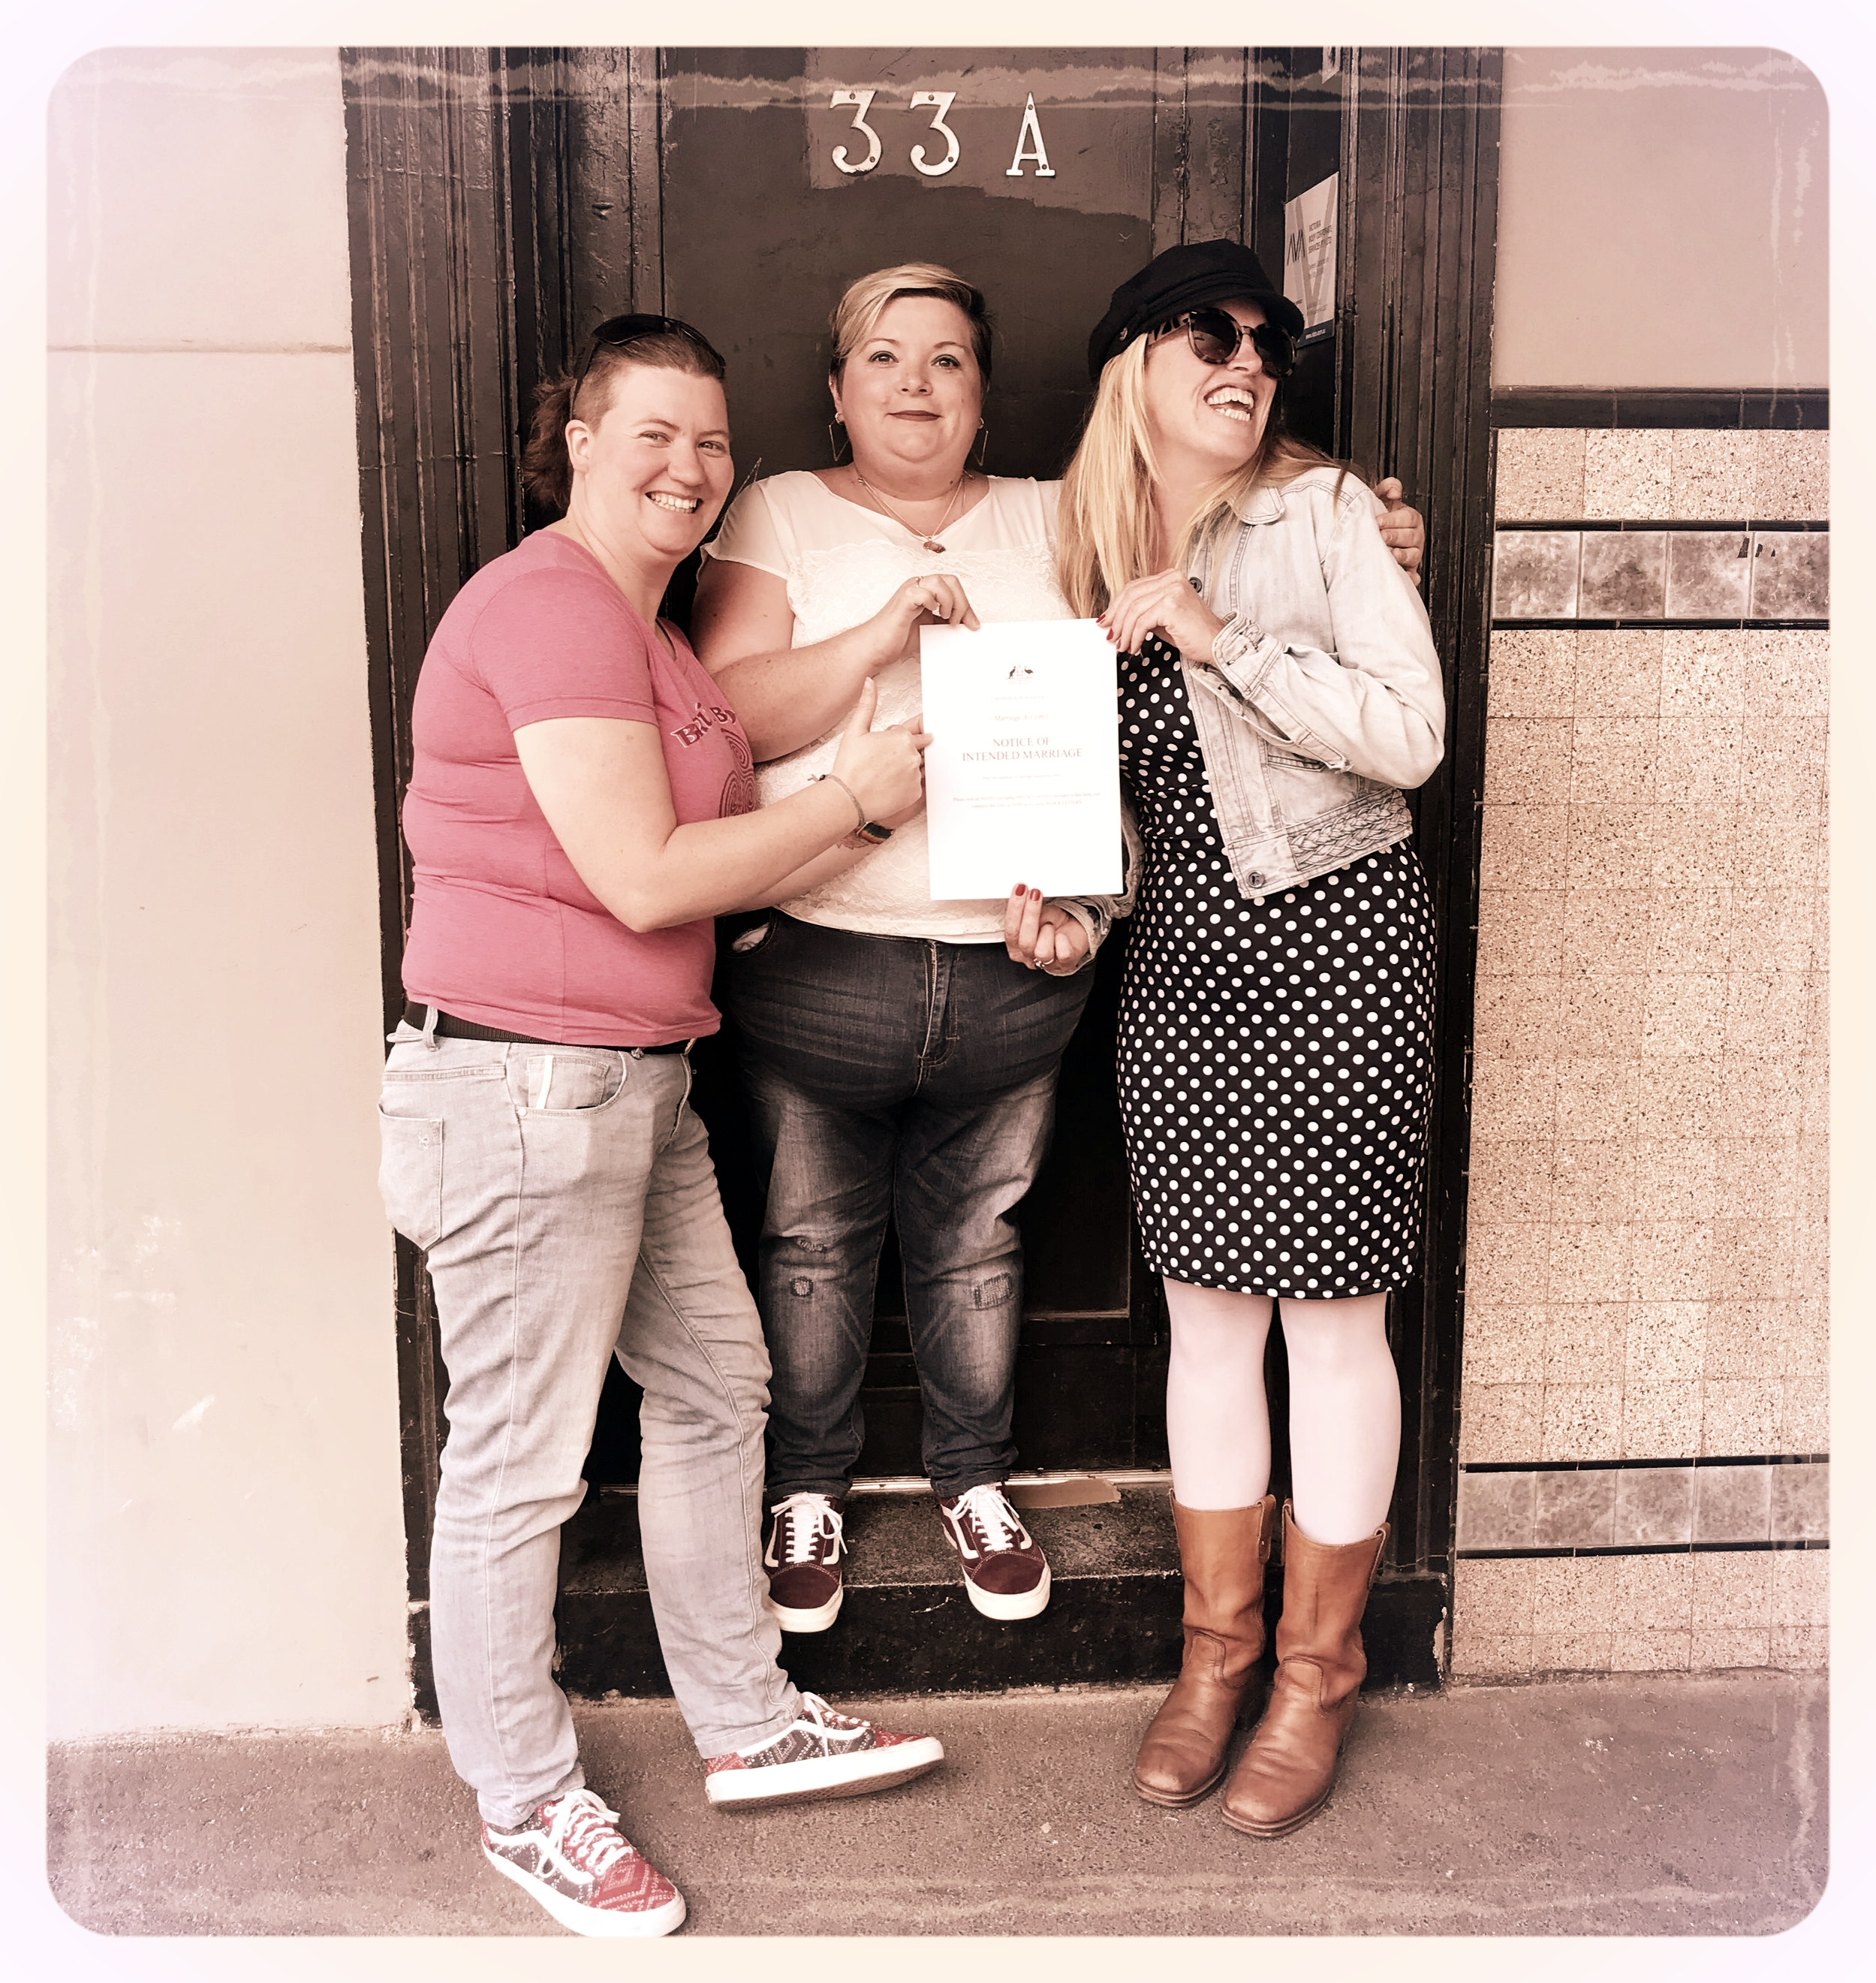 Jess, Belinda and I pose for a celebratory photo after signing the  Notice of Intent to Marry  form on the very first day that same-sex couples could fill it in. We were very excited! Location: Sorse e Morsi - St Kilda